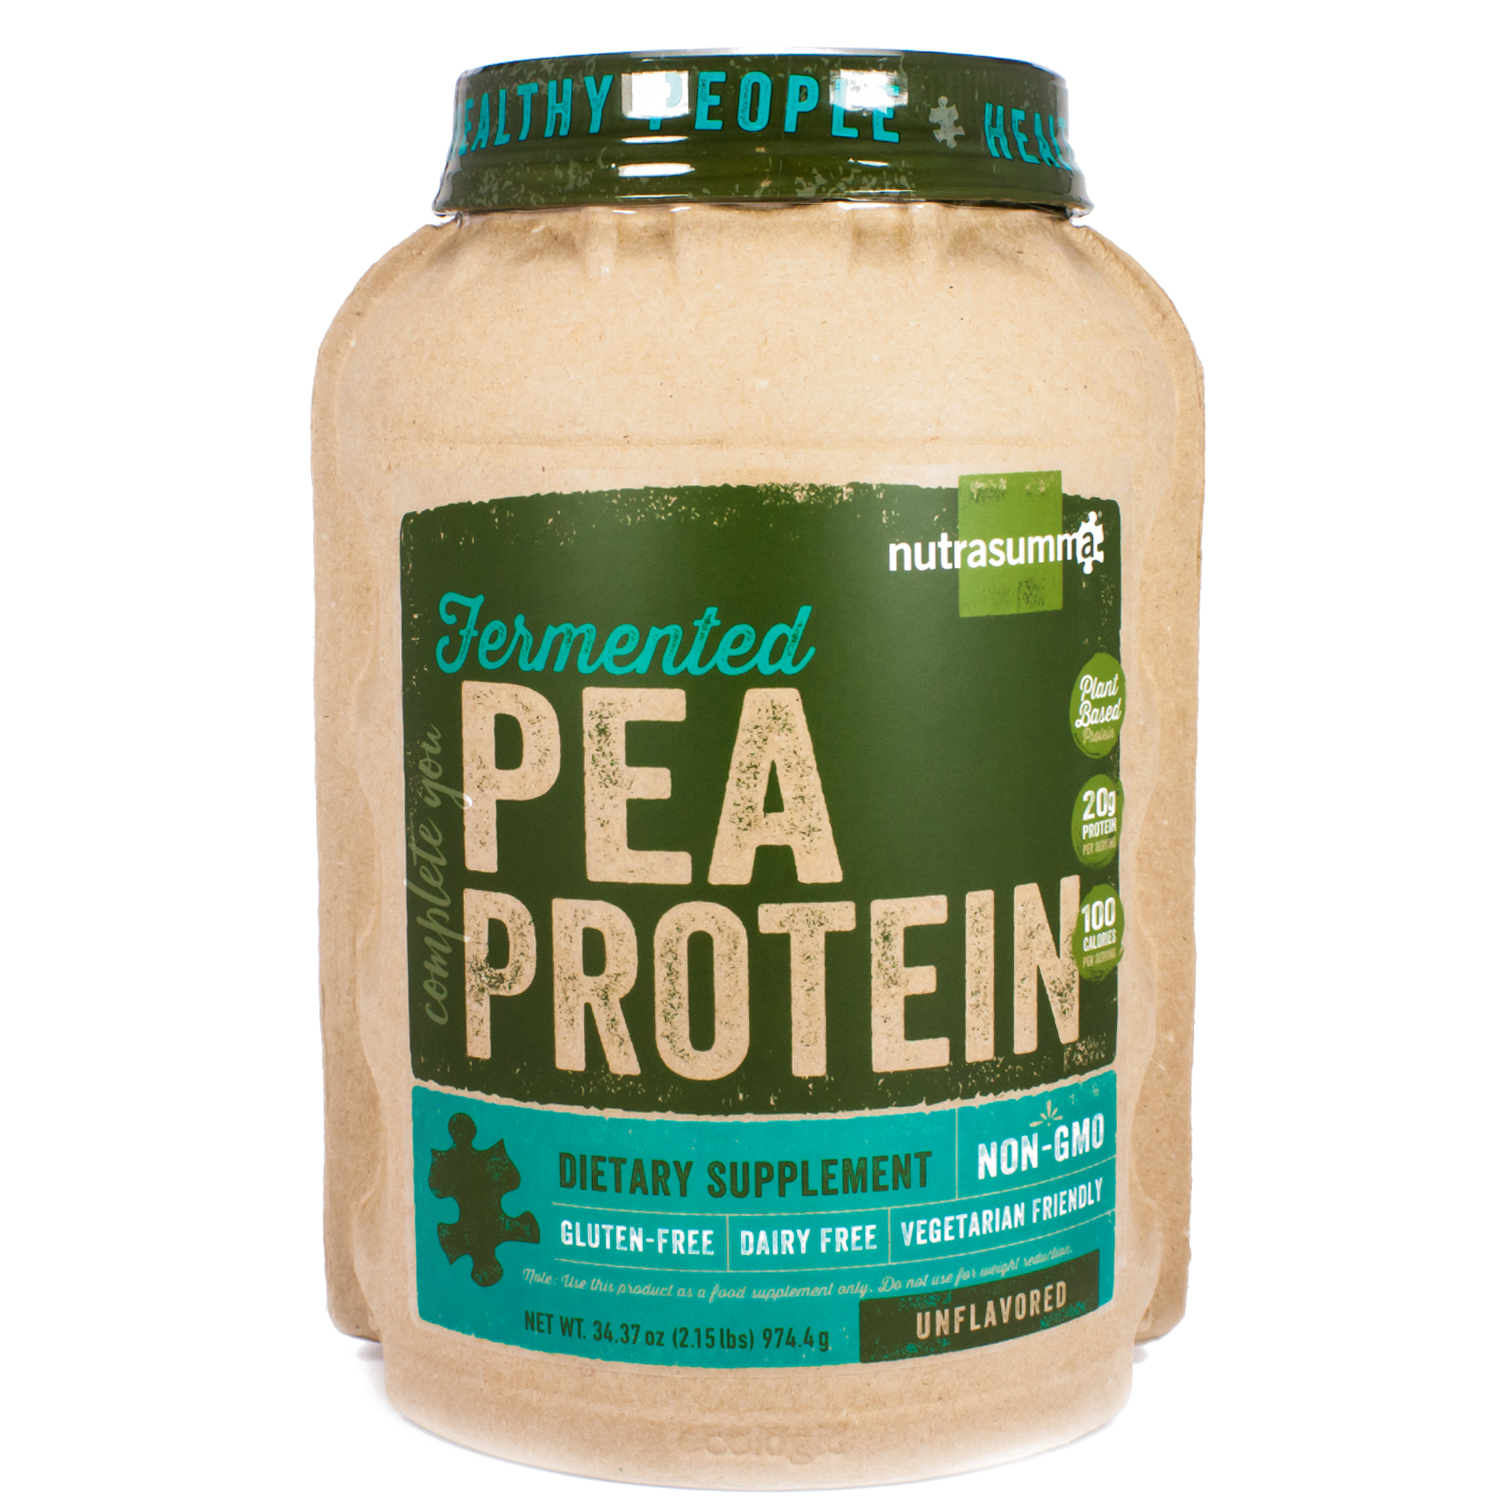 Fermented Pea Protein Unflavored By Nutrasuma - 34 Ounces